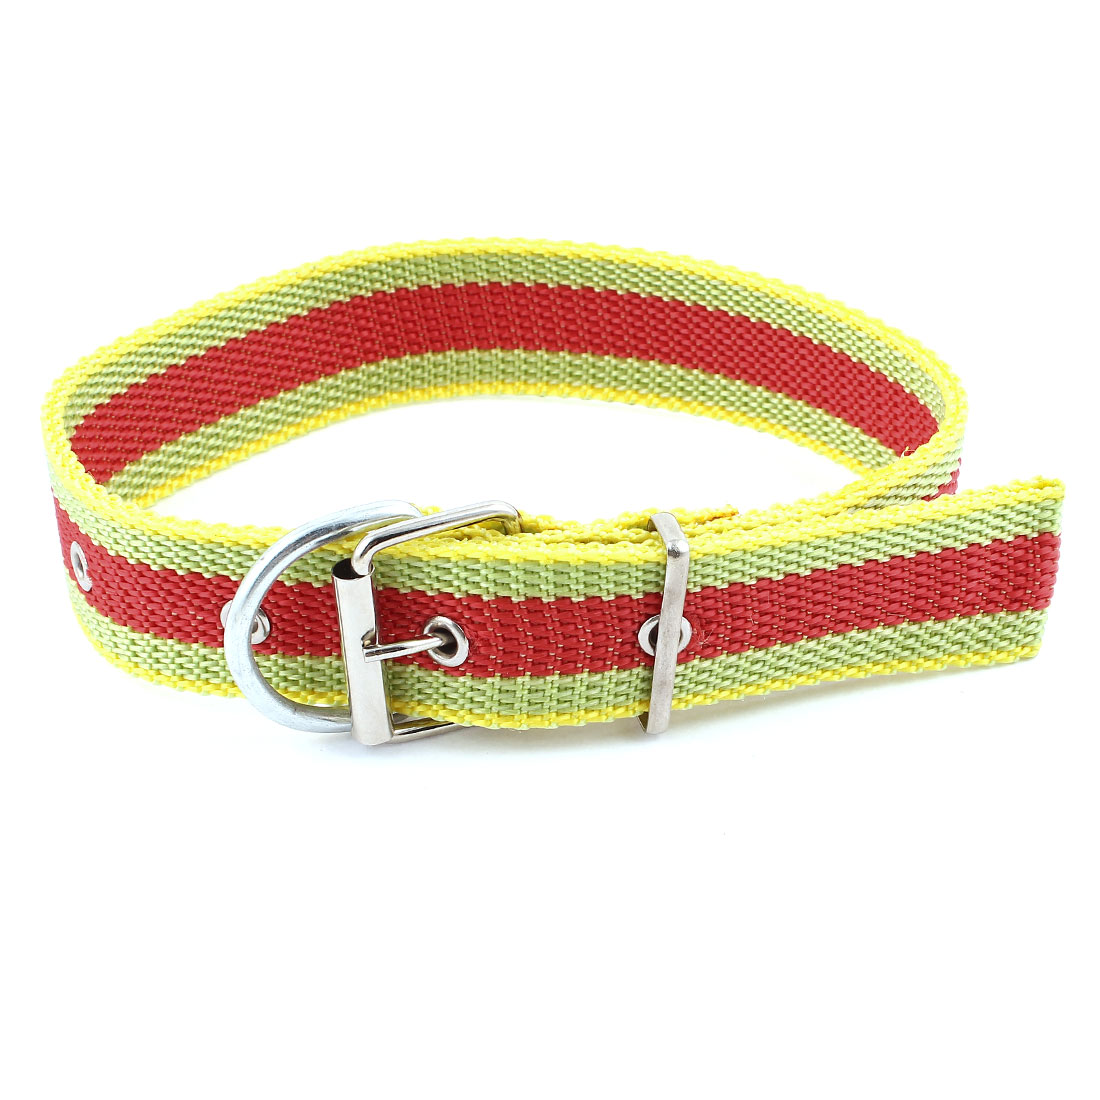 Single Pin Buckle Adjustable Belt Pet Dog Doggy Collar Necklace Red Yellow